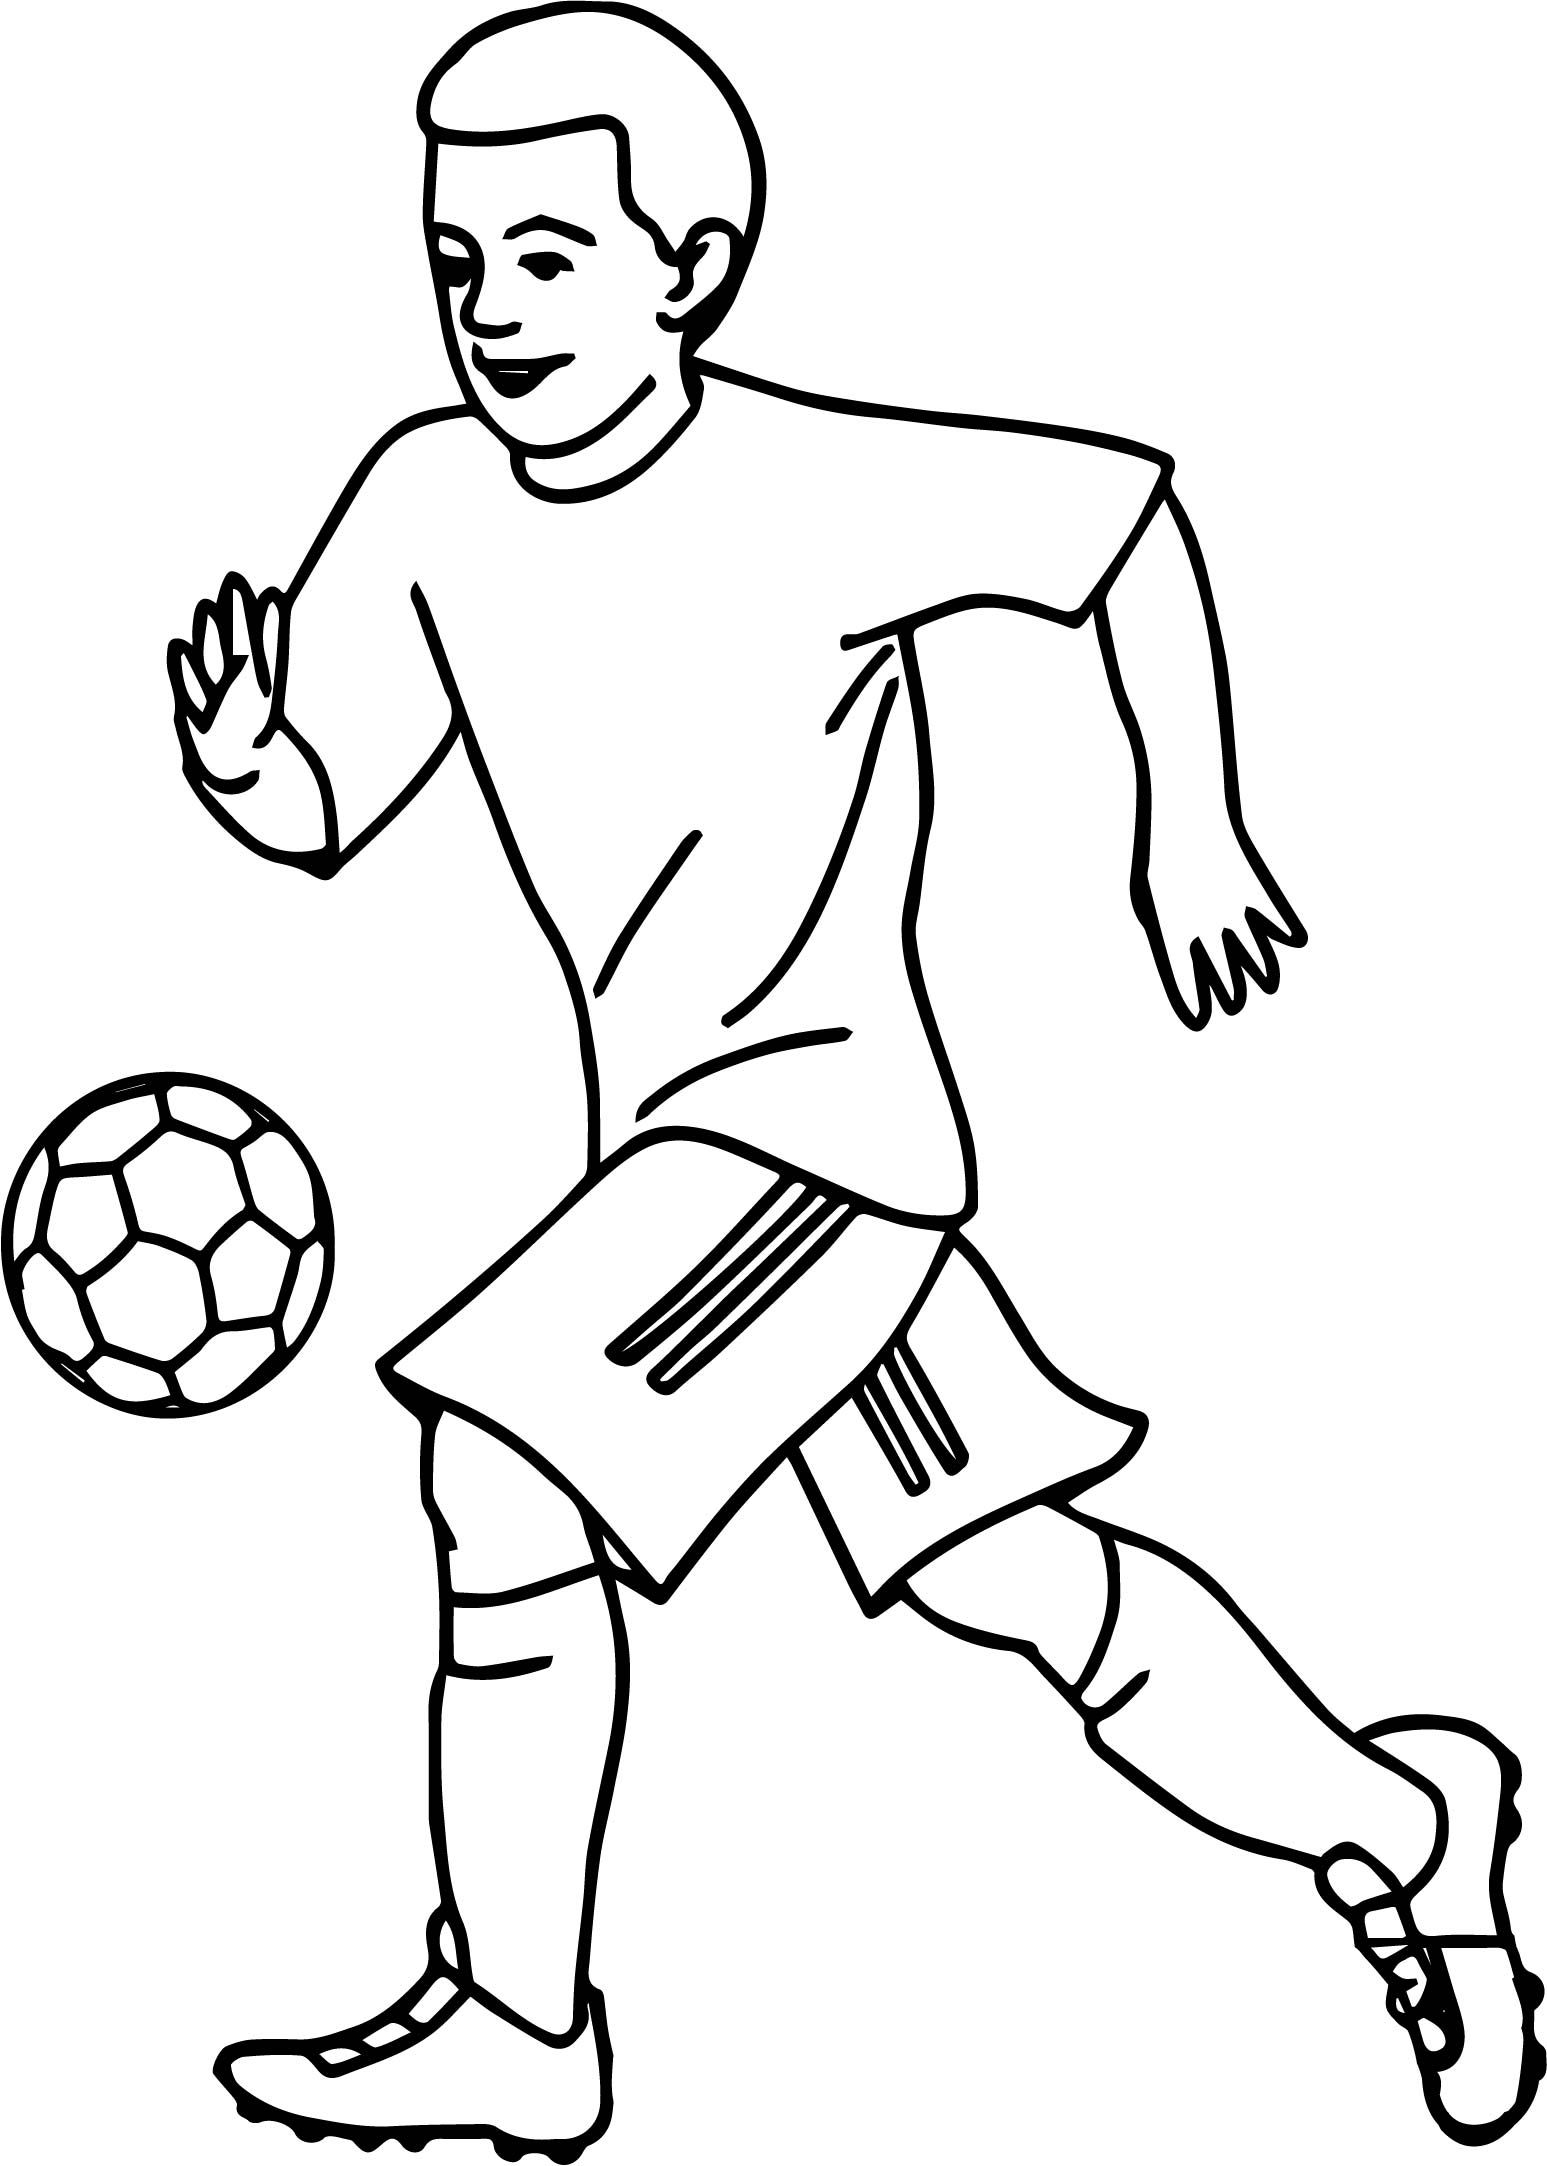 Awesome Soccer Sports Playing Football Coloring Page Sports Coloring Pages Football Coloring Pages Baseball Coloring Pages